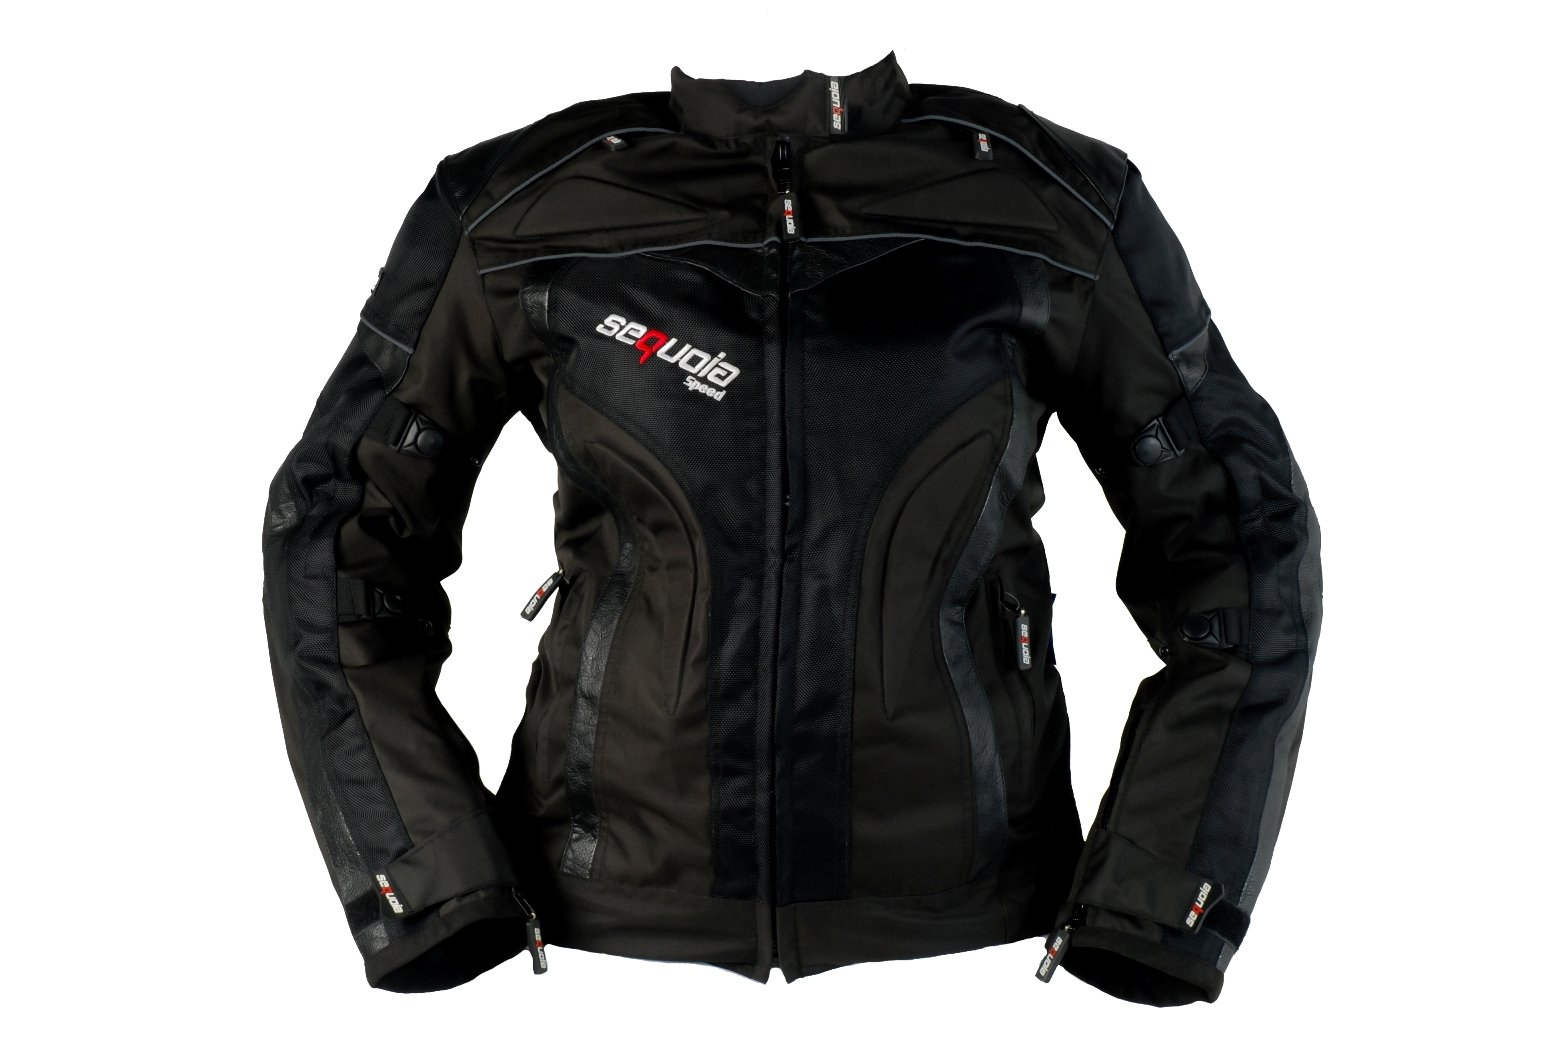 Sequoia Speed AVS Ladies Armor Protective Jacket Motorcycle Body Gear Racing Motocross Spine Chest Full New Protection Riding Size XL